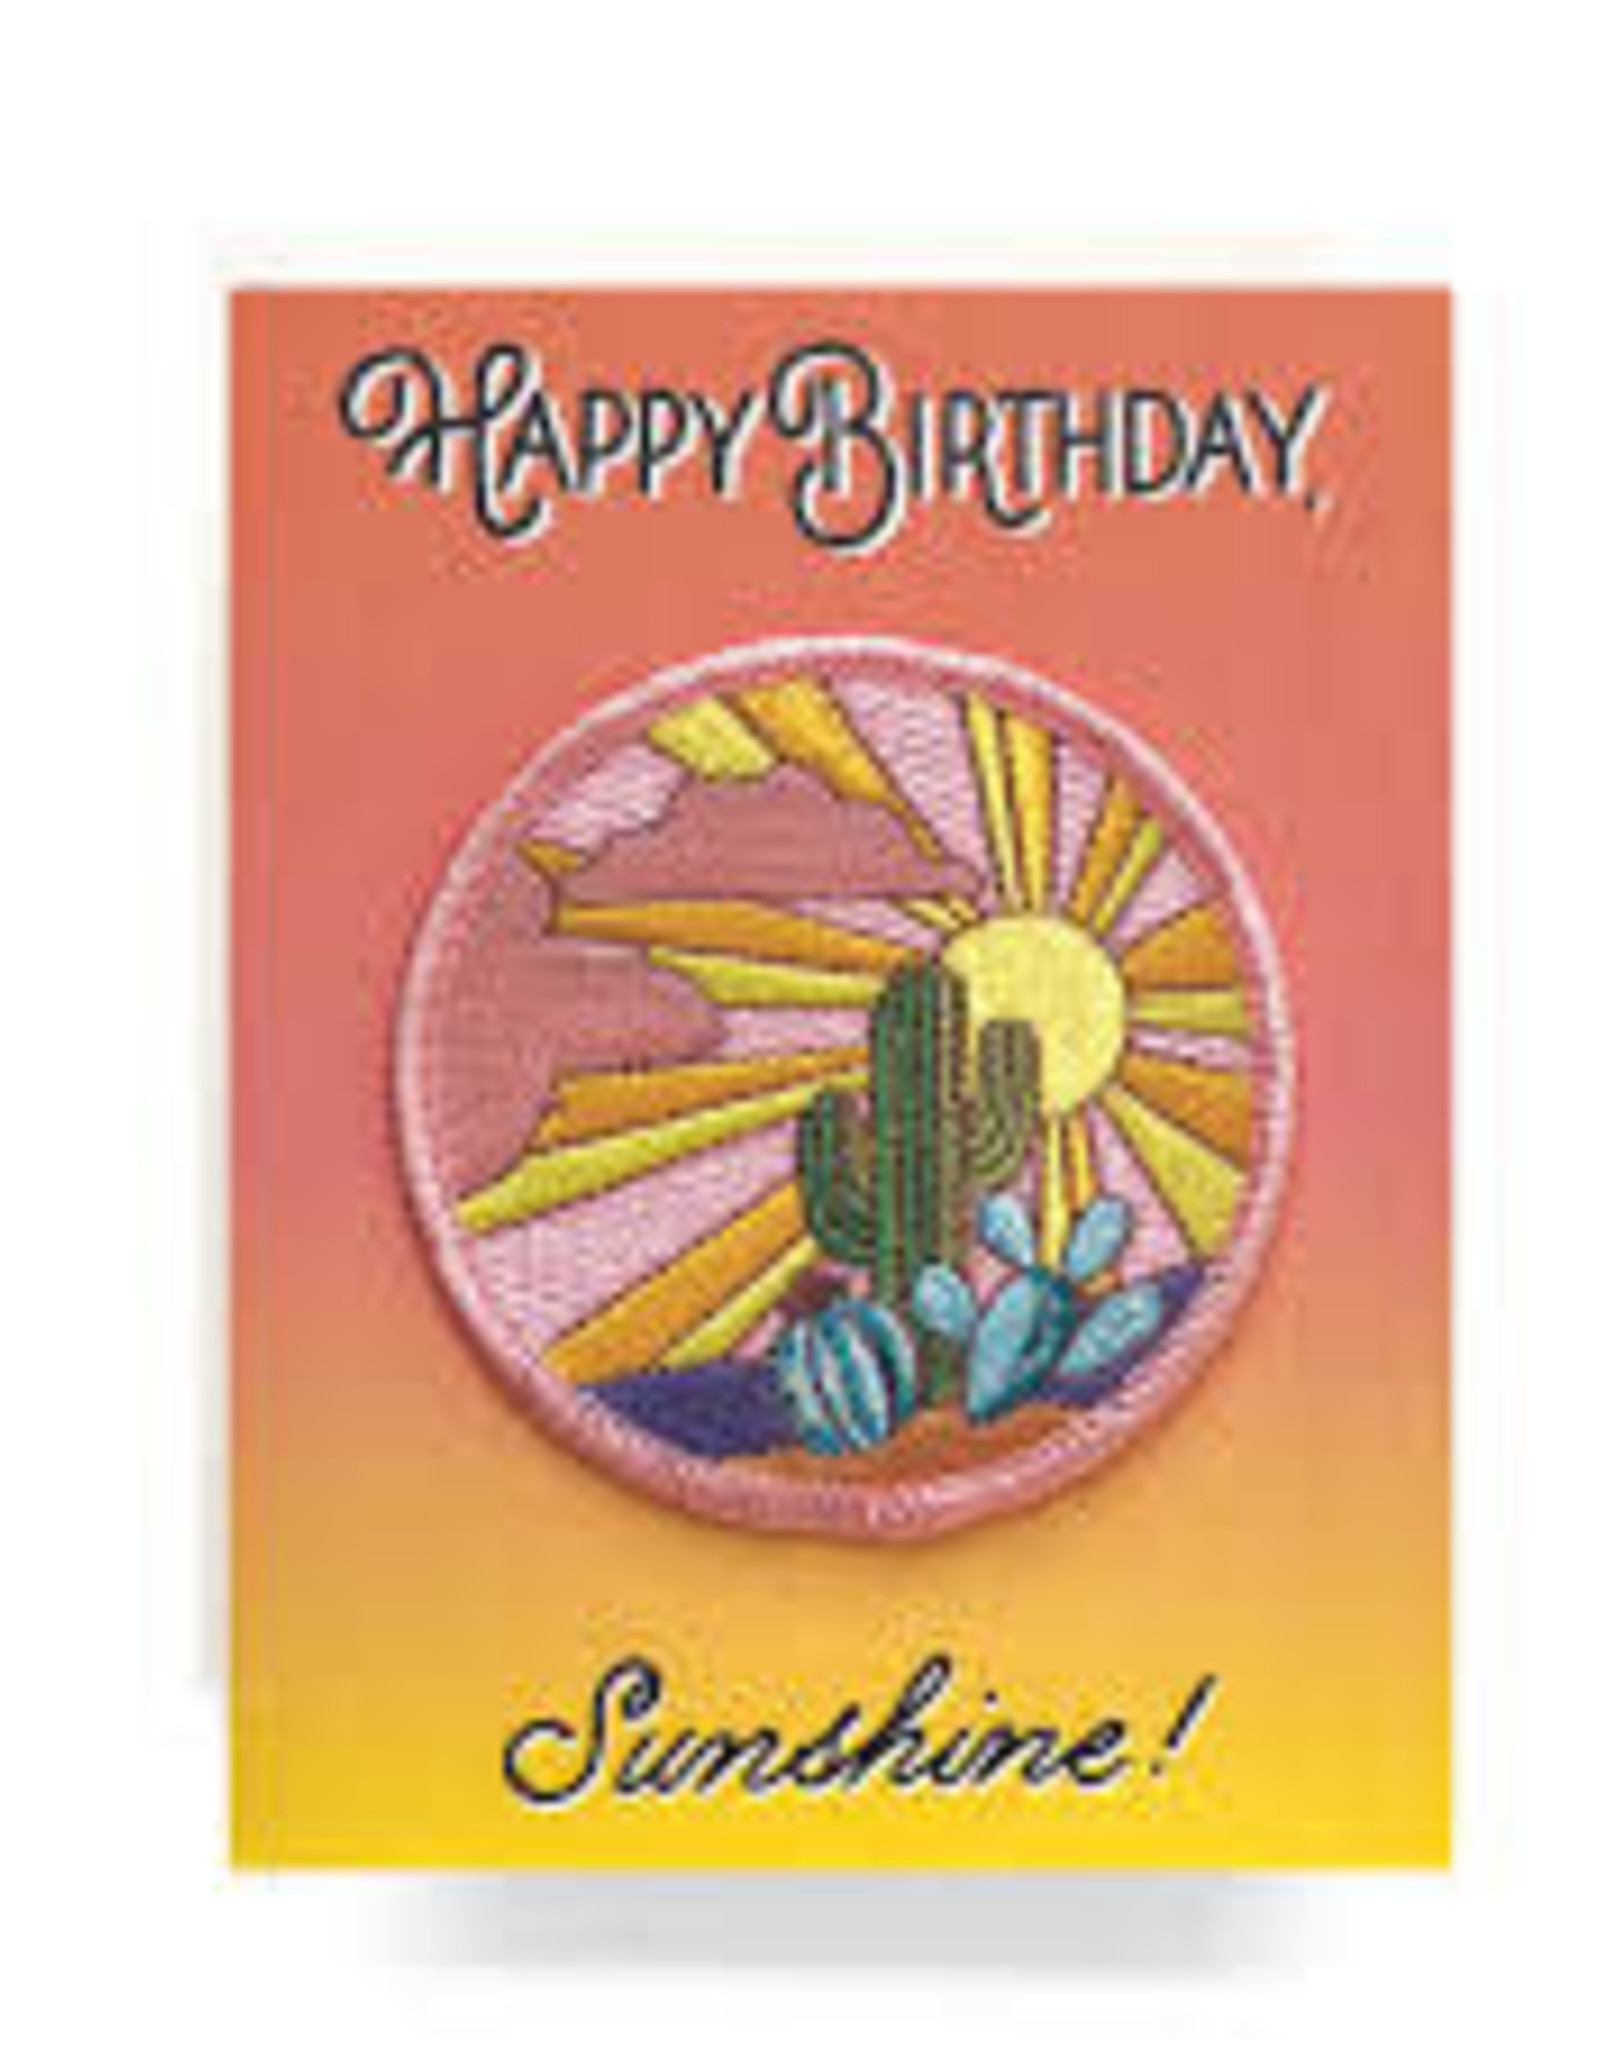 Sunshine Birthday Greeting Card with Patch - Antiquaria